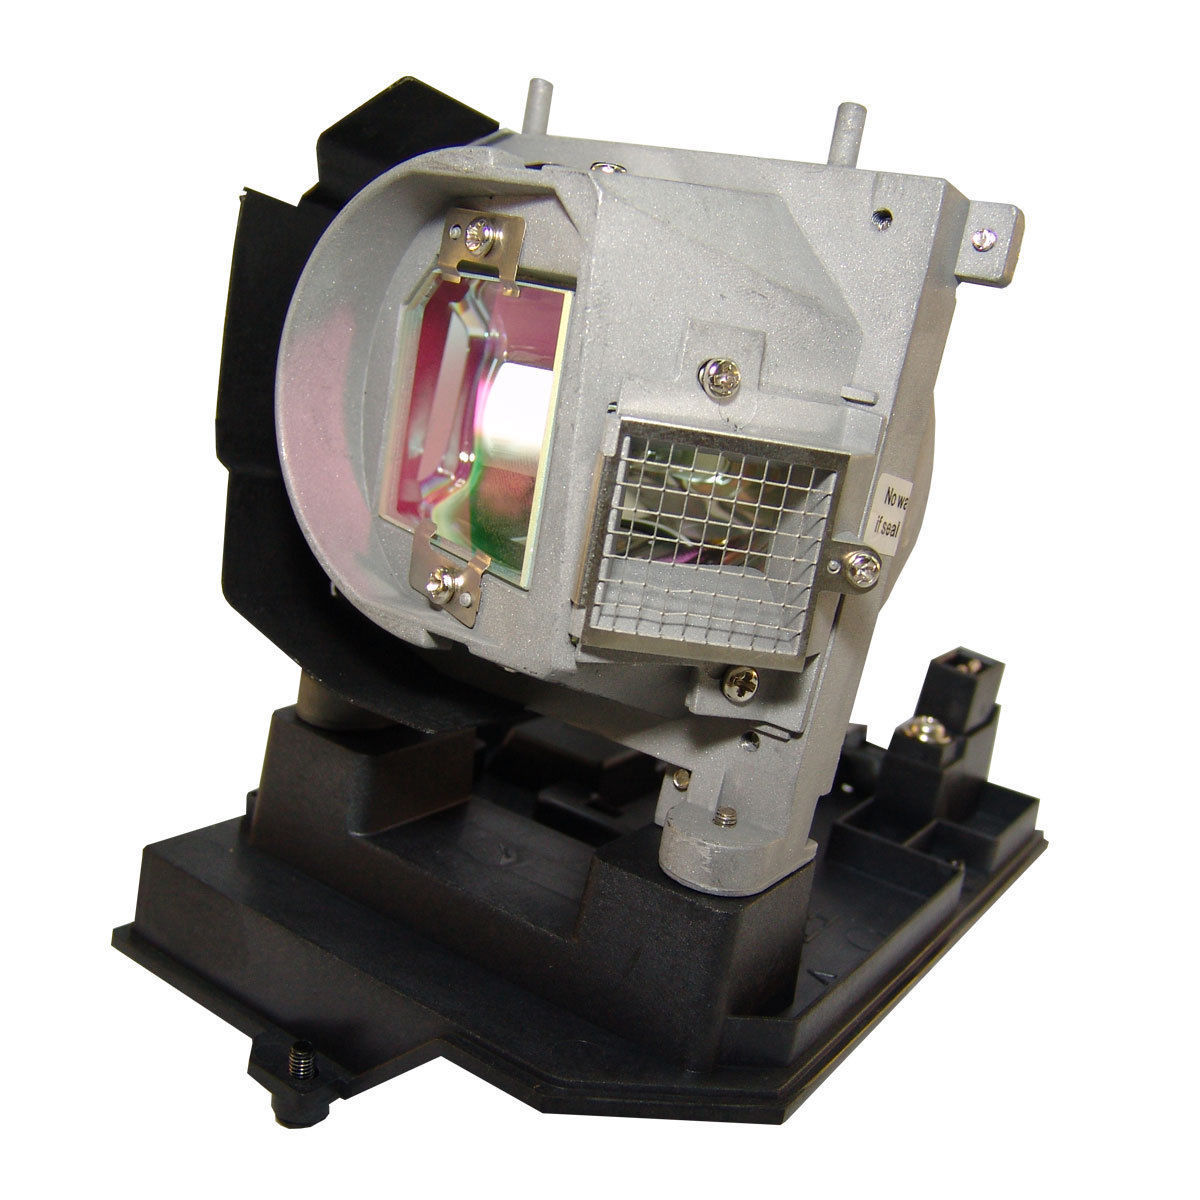 все цены на  Projector Lamp Bulb 331-1310 725-10263 for DELL S500 S500wi with housing  онлайн